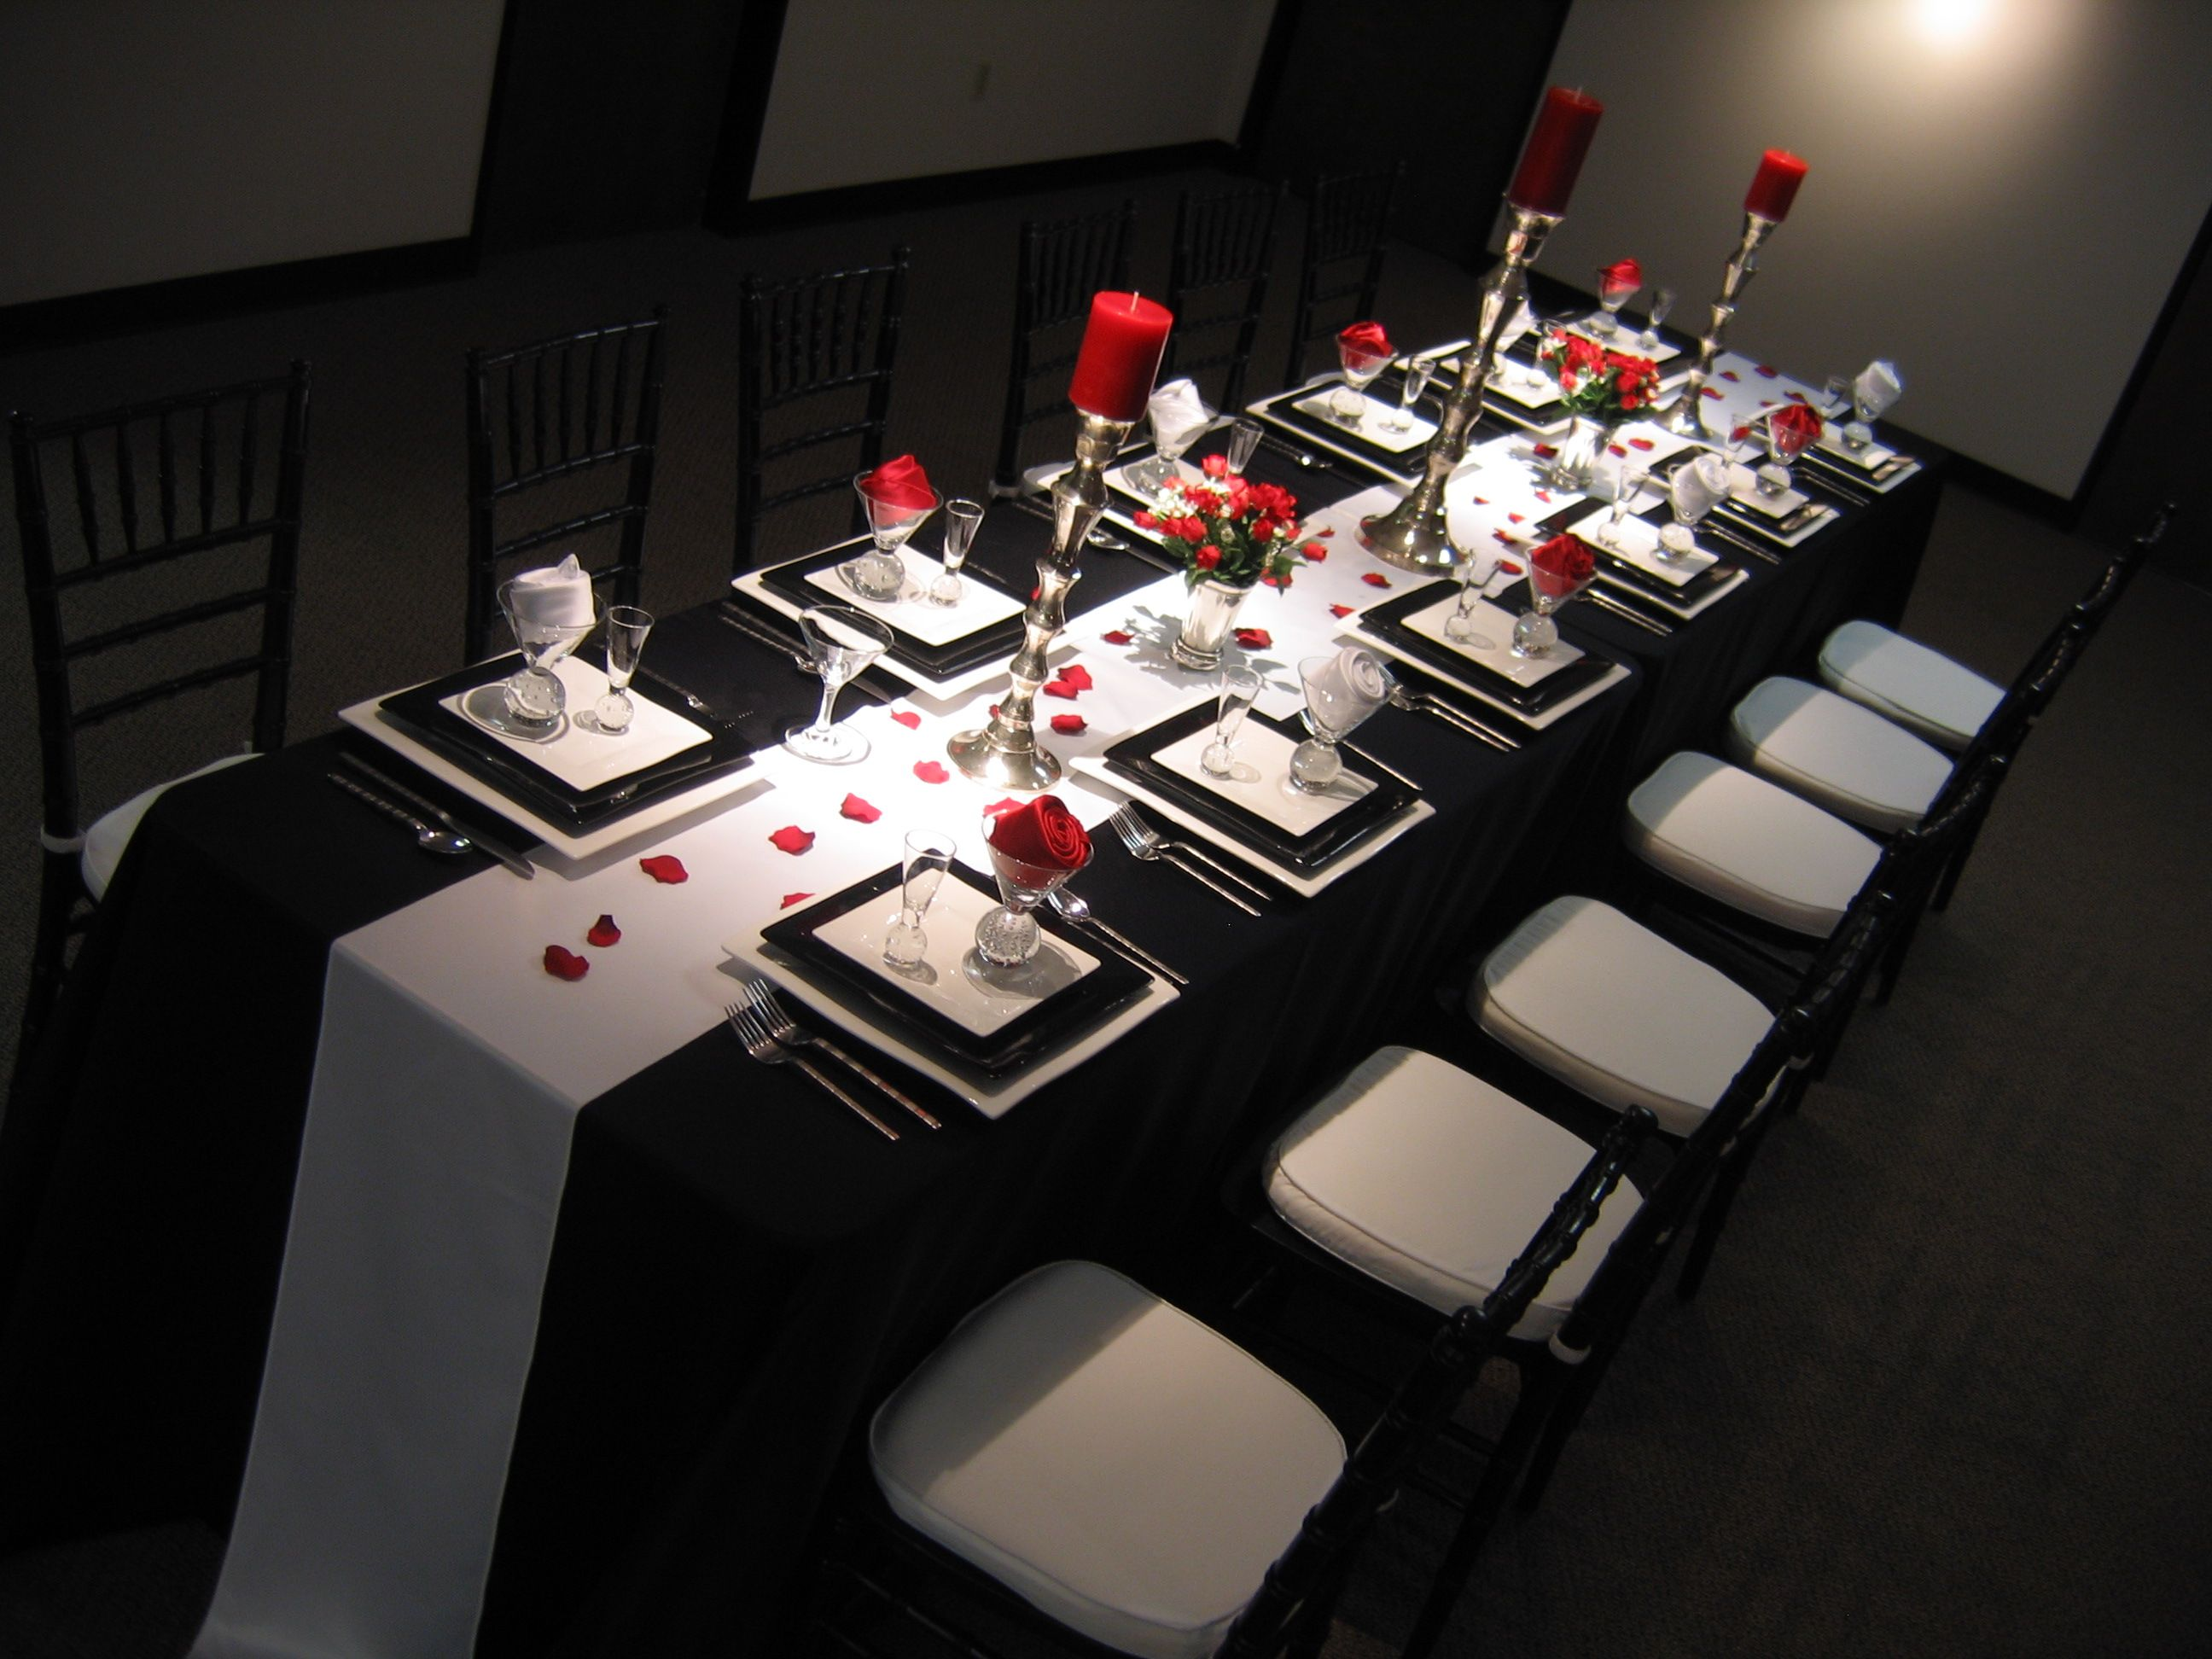 silver wedding anniversary decorating ideas | red black and white wedding | Reference For Wedding Decoration · Red Table SettingsWedding ... & silver wedding anniversary decorating ideas | red black and white ...